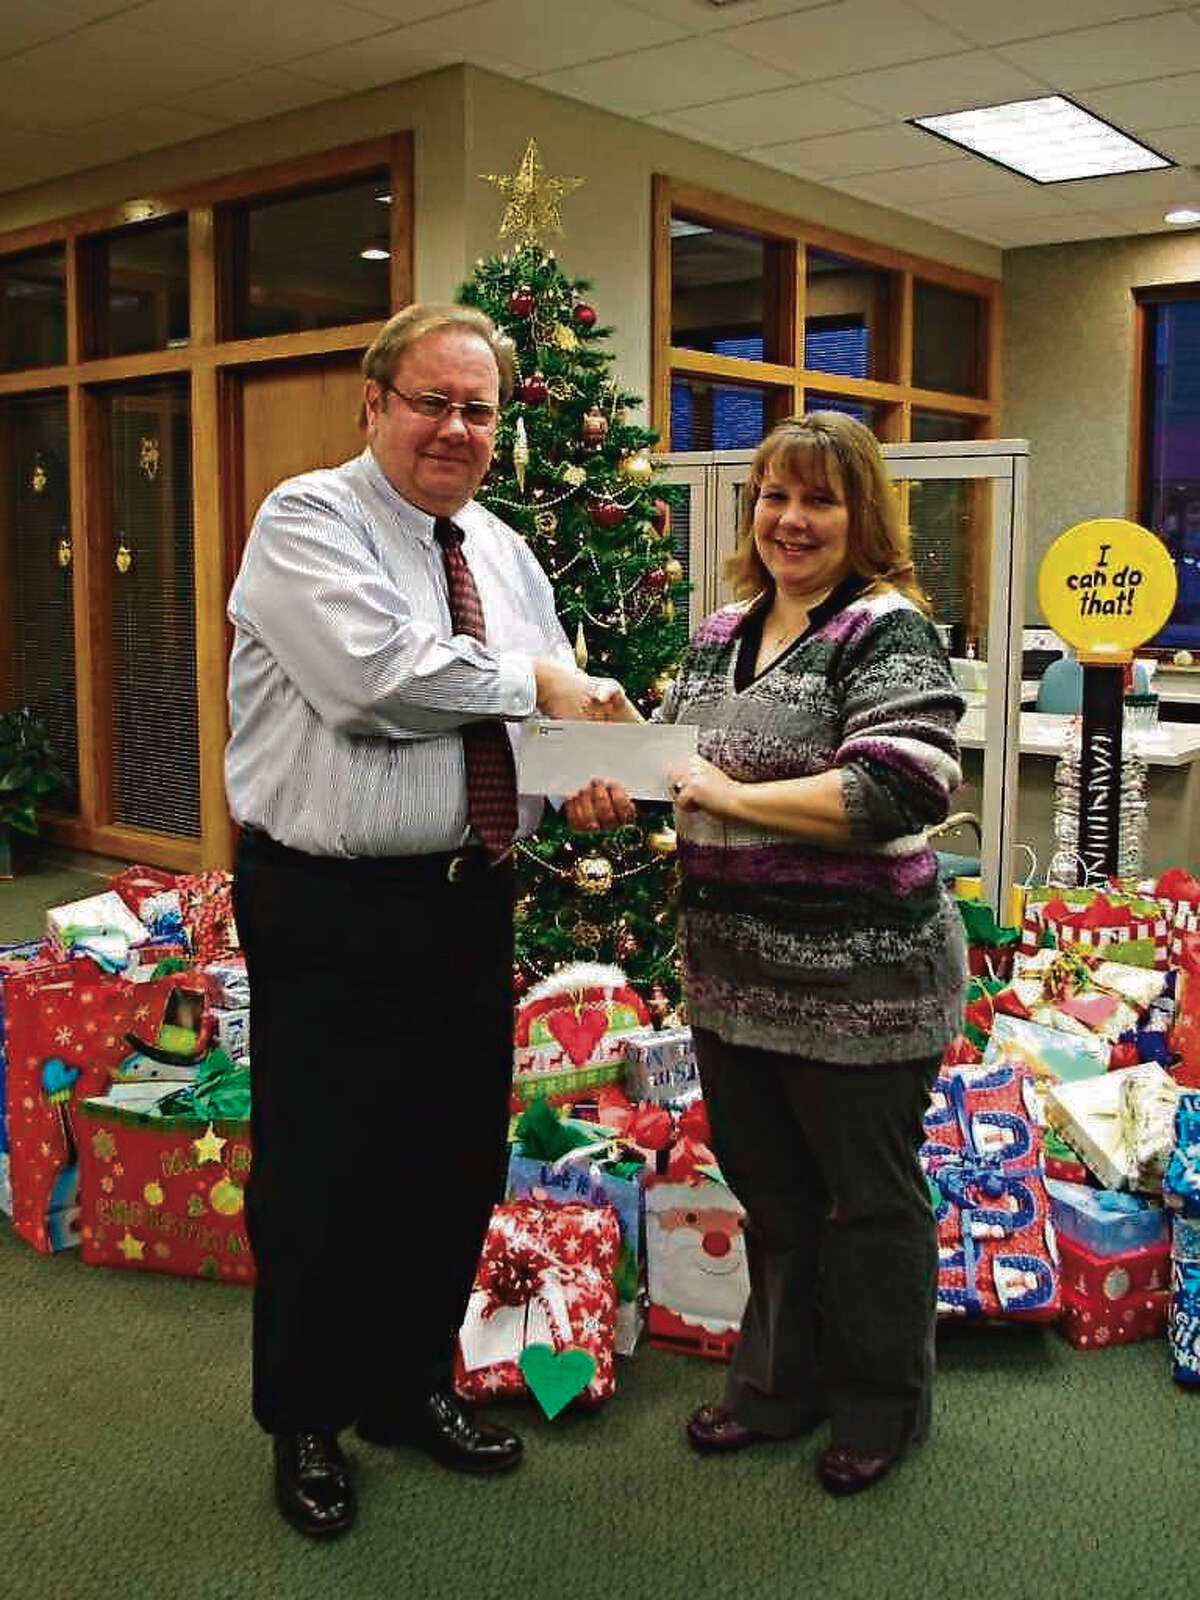 Steve Brower, Northwestern Bank's Manistee area vice president, presents a $500 check from the bank to Robin Paulus, executive director of Love INC of Manistee (now ECHO His Love) in December 2012.